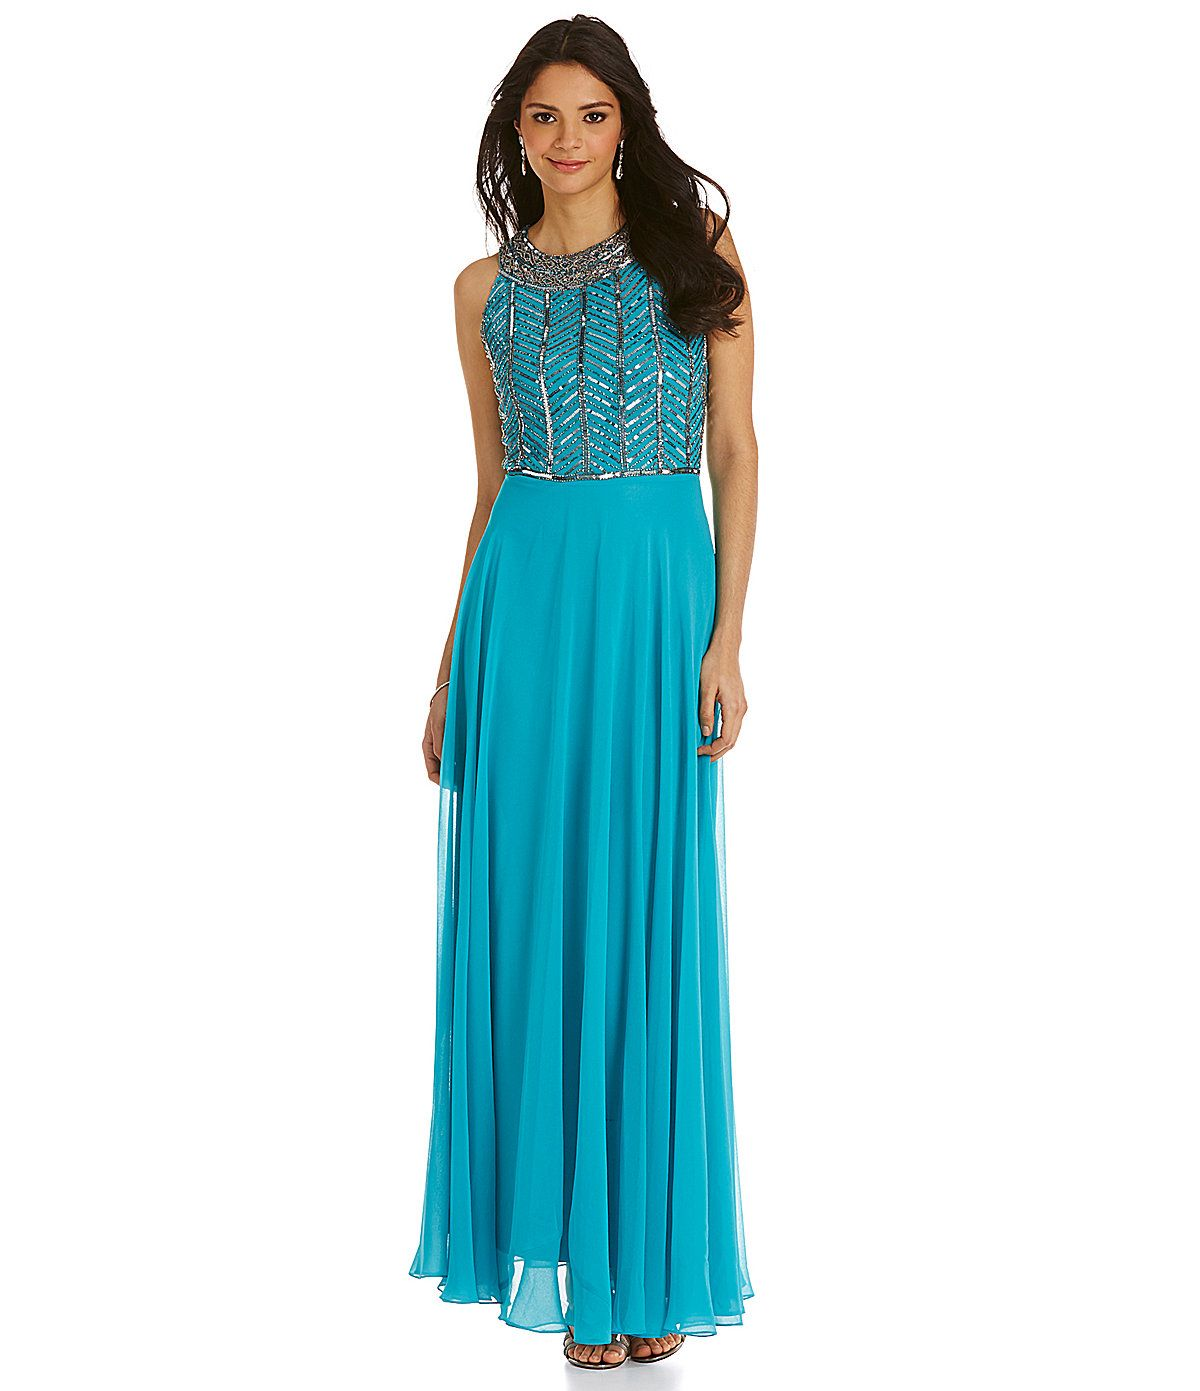 Jkara Beaded Necklace Neckline Gown | Dillards.com $278 | Formal ...